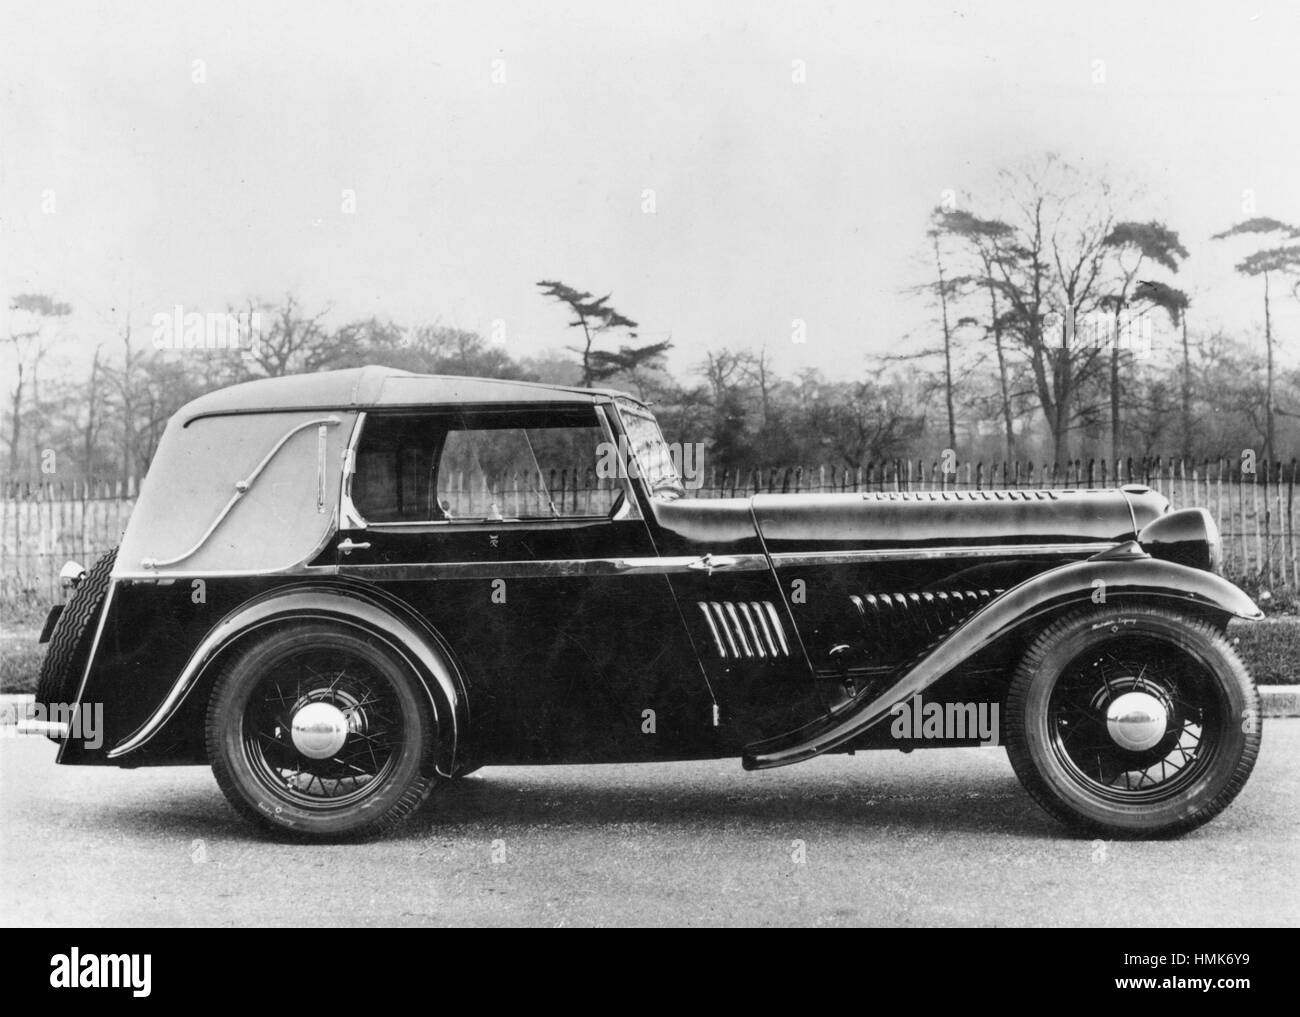 1936 Car High Resolution Stock Photography and Images - Alamy